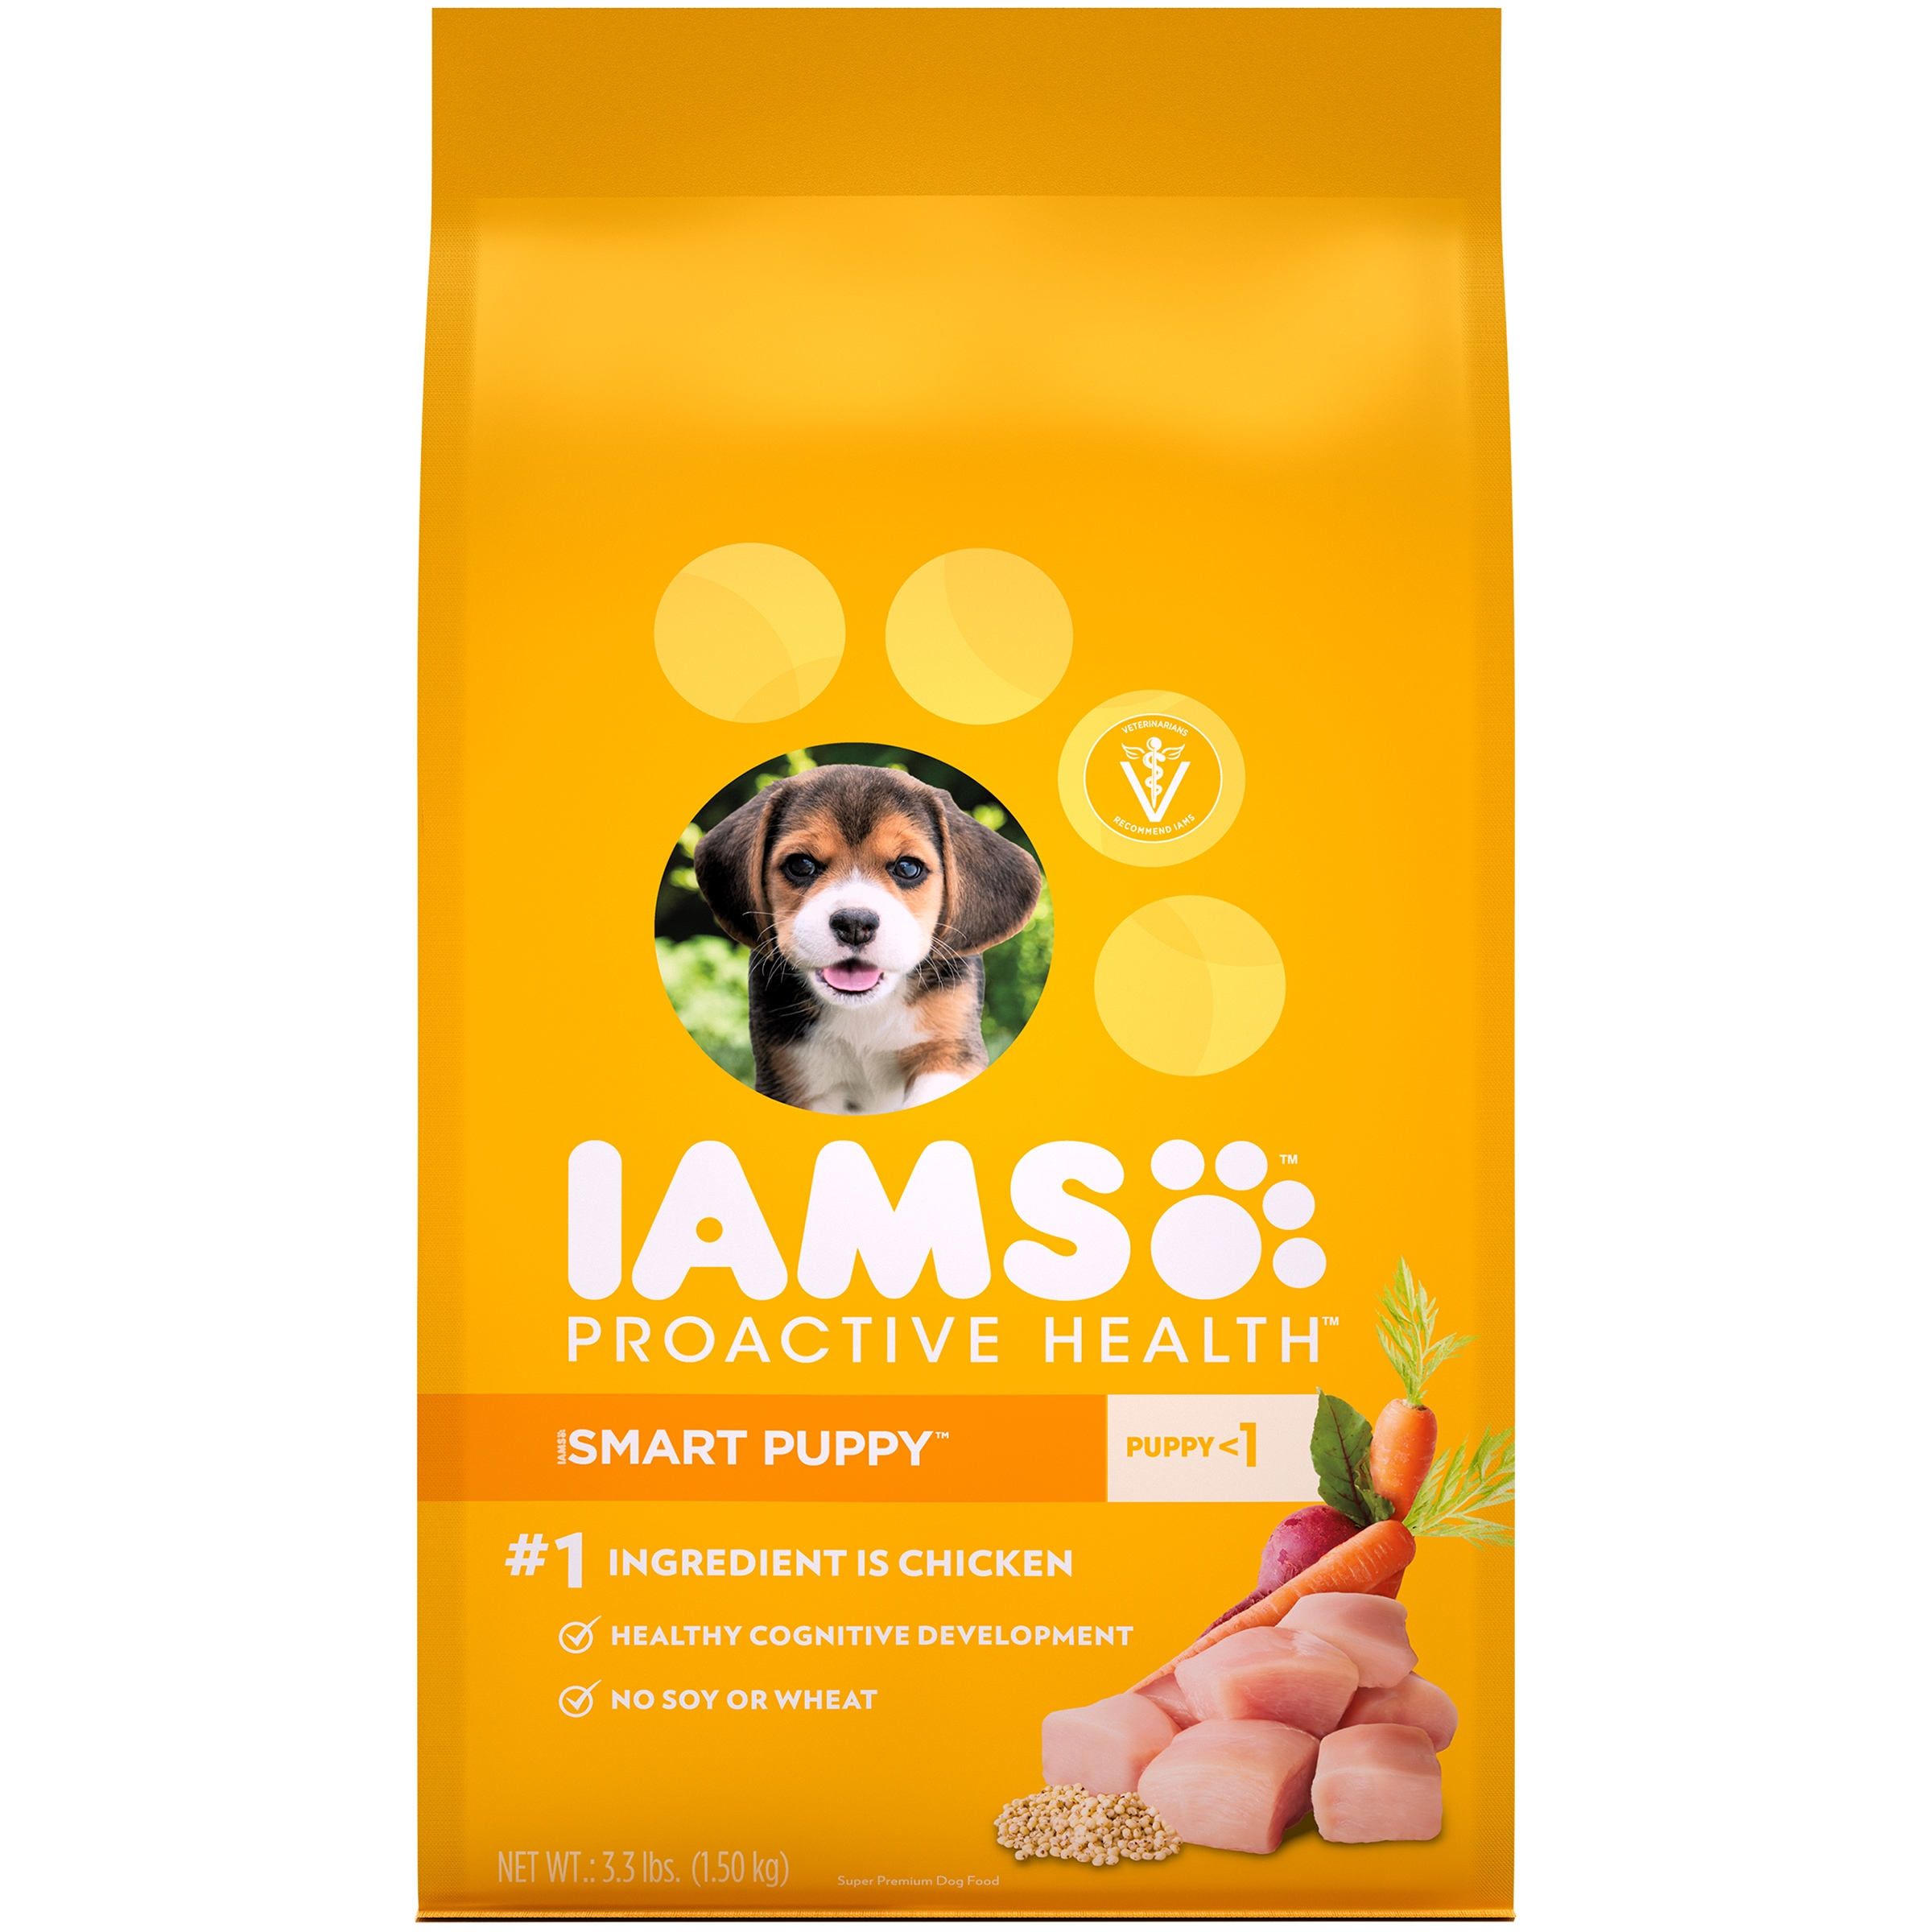 Iams ProActive Health Smart Puppy Original Premium Puppy Food, 3.3 lb